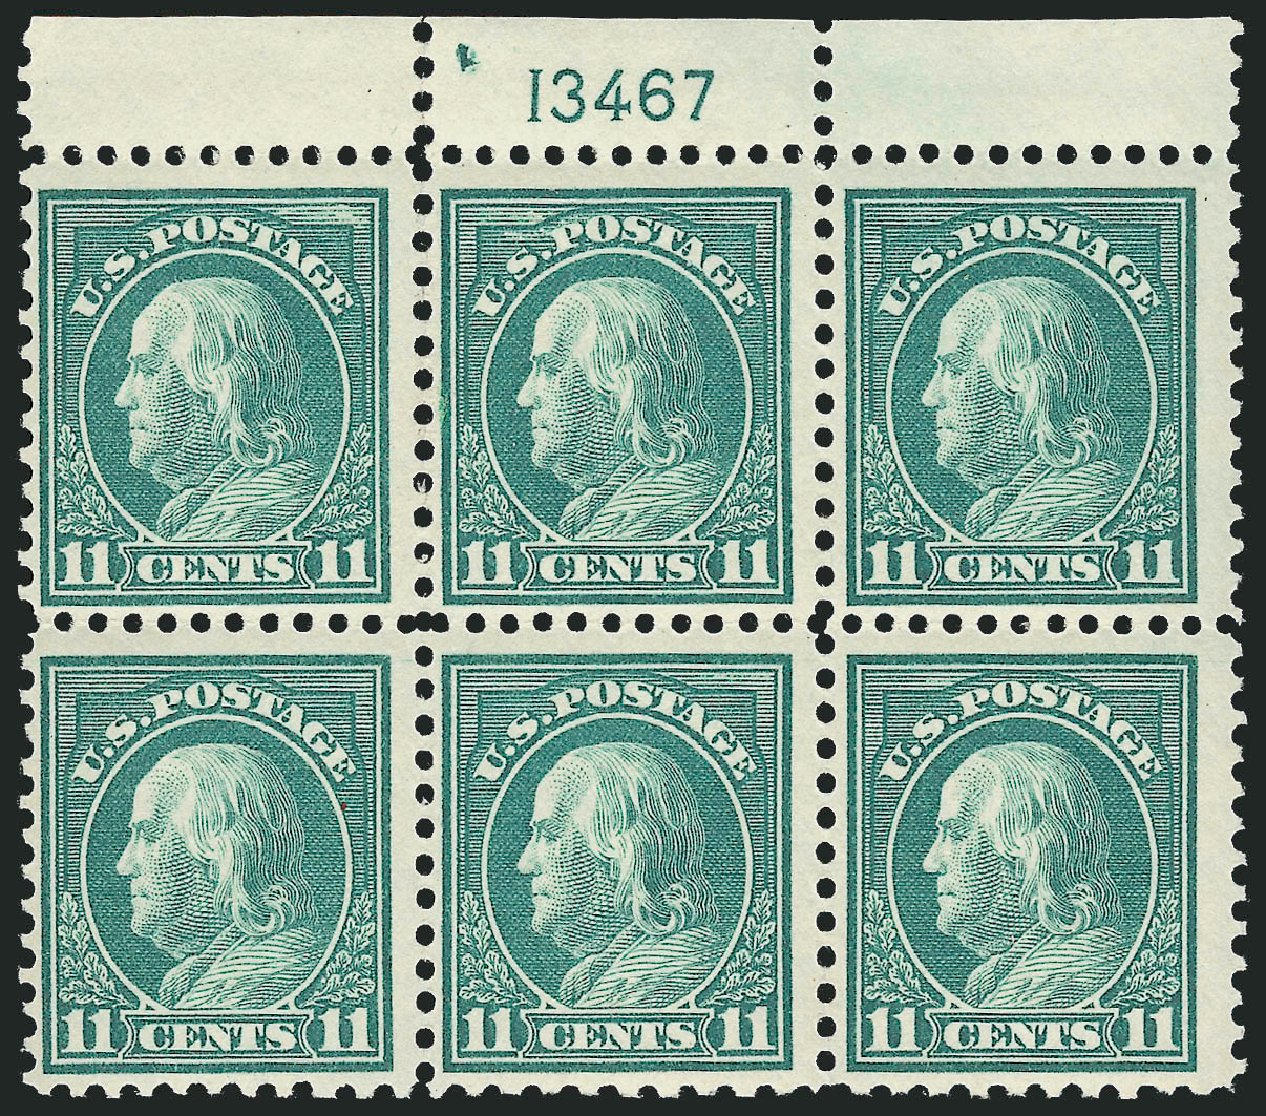 Price of US Stamp Scott Catalogue #511 - 1917 11c Franklin Perf 11. Robert Siegel Auction Galleries, Feb 2015, Sale 1093, Lot 476